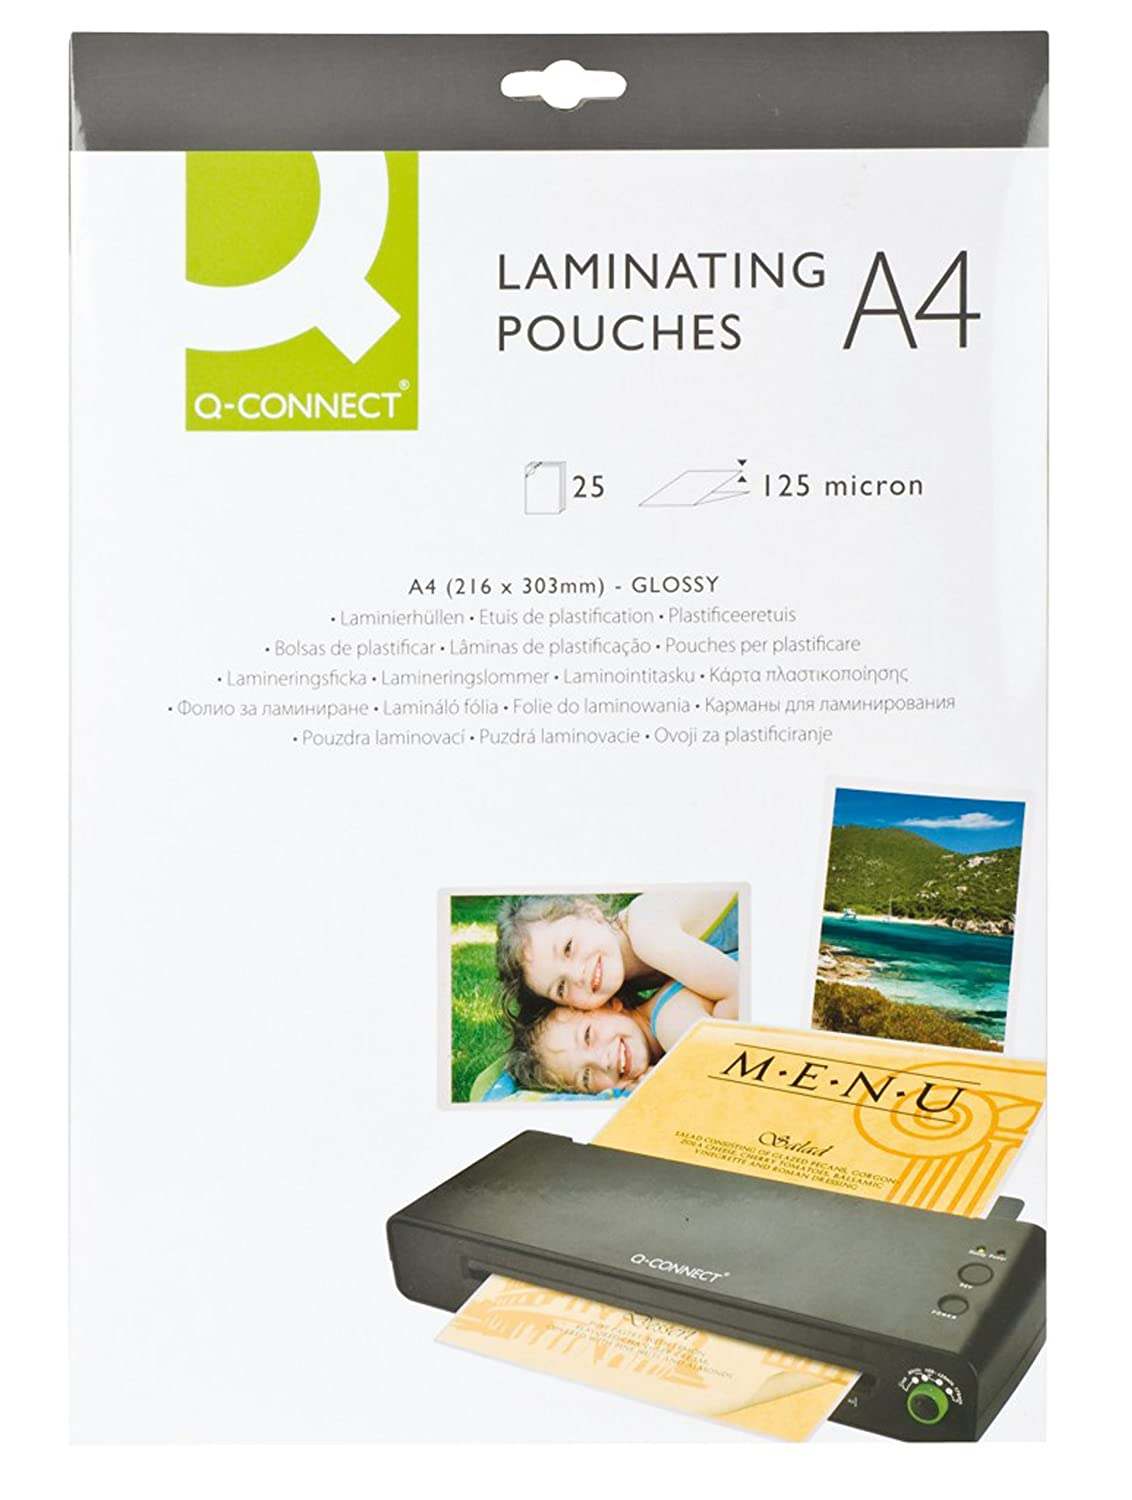 Amazon.com : Q-Connect Laminating Pouch A4 125micron Pack of ...